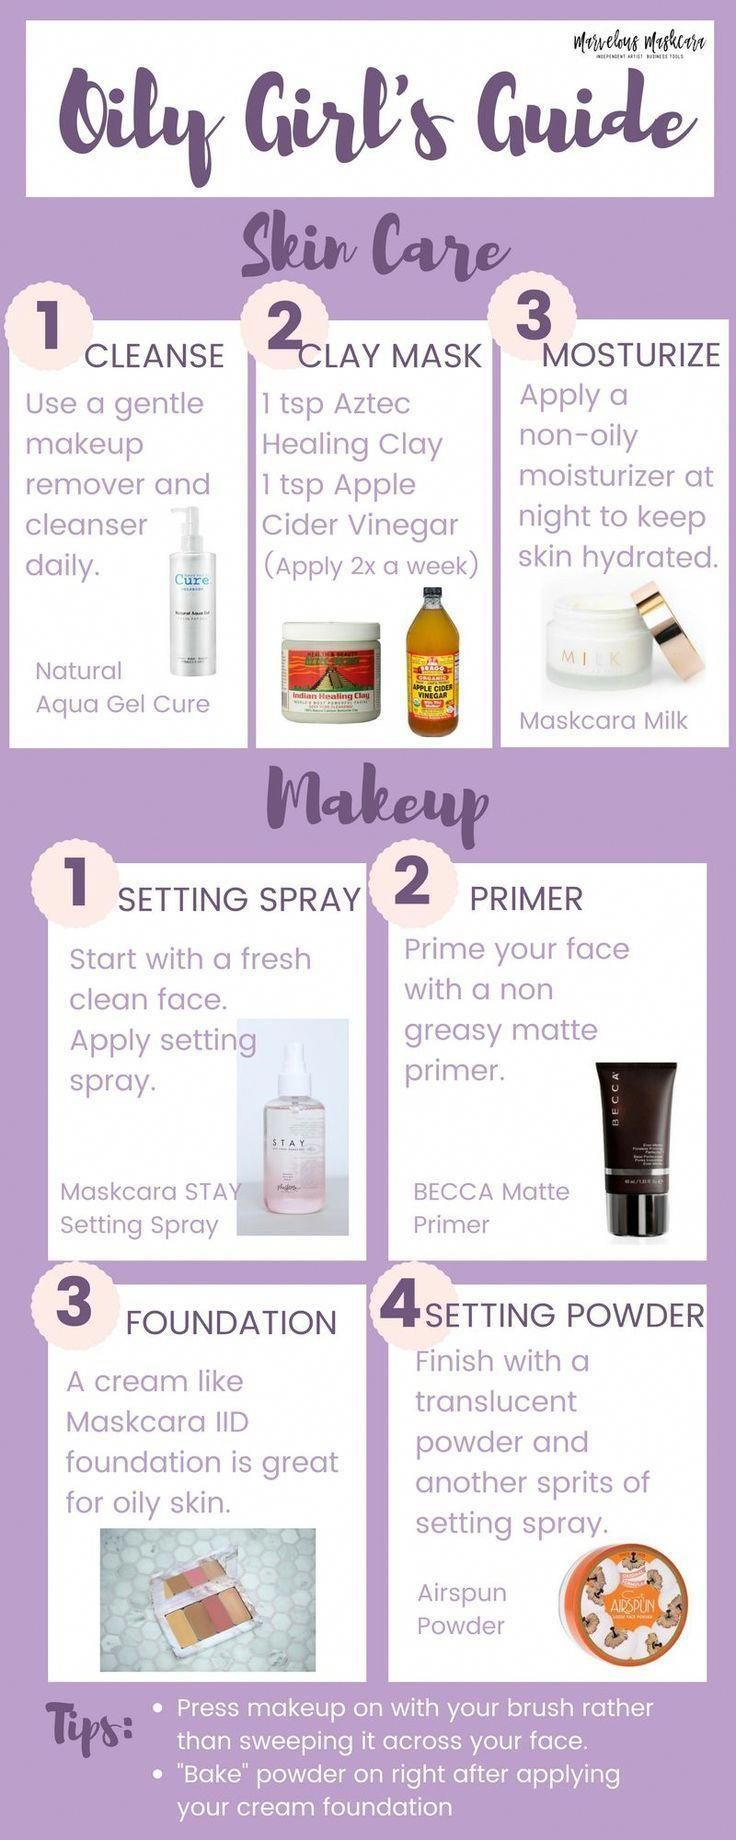 The Oily Girl's Guide